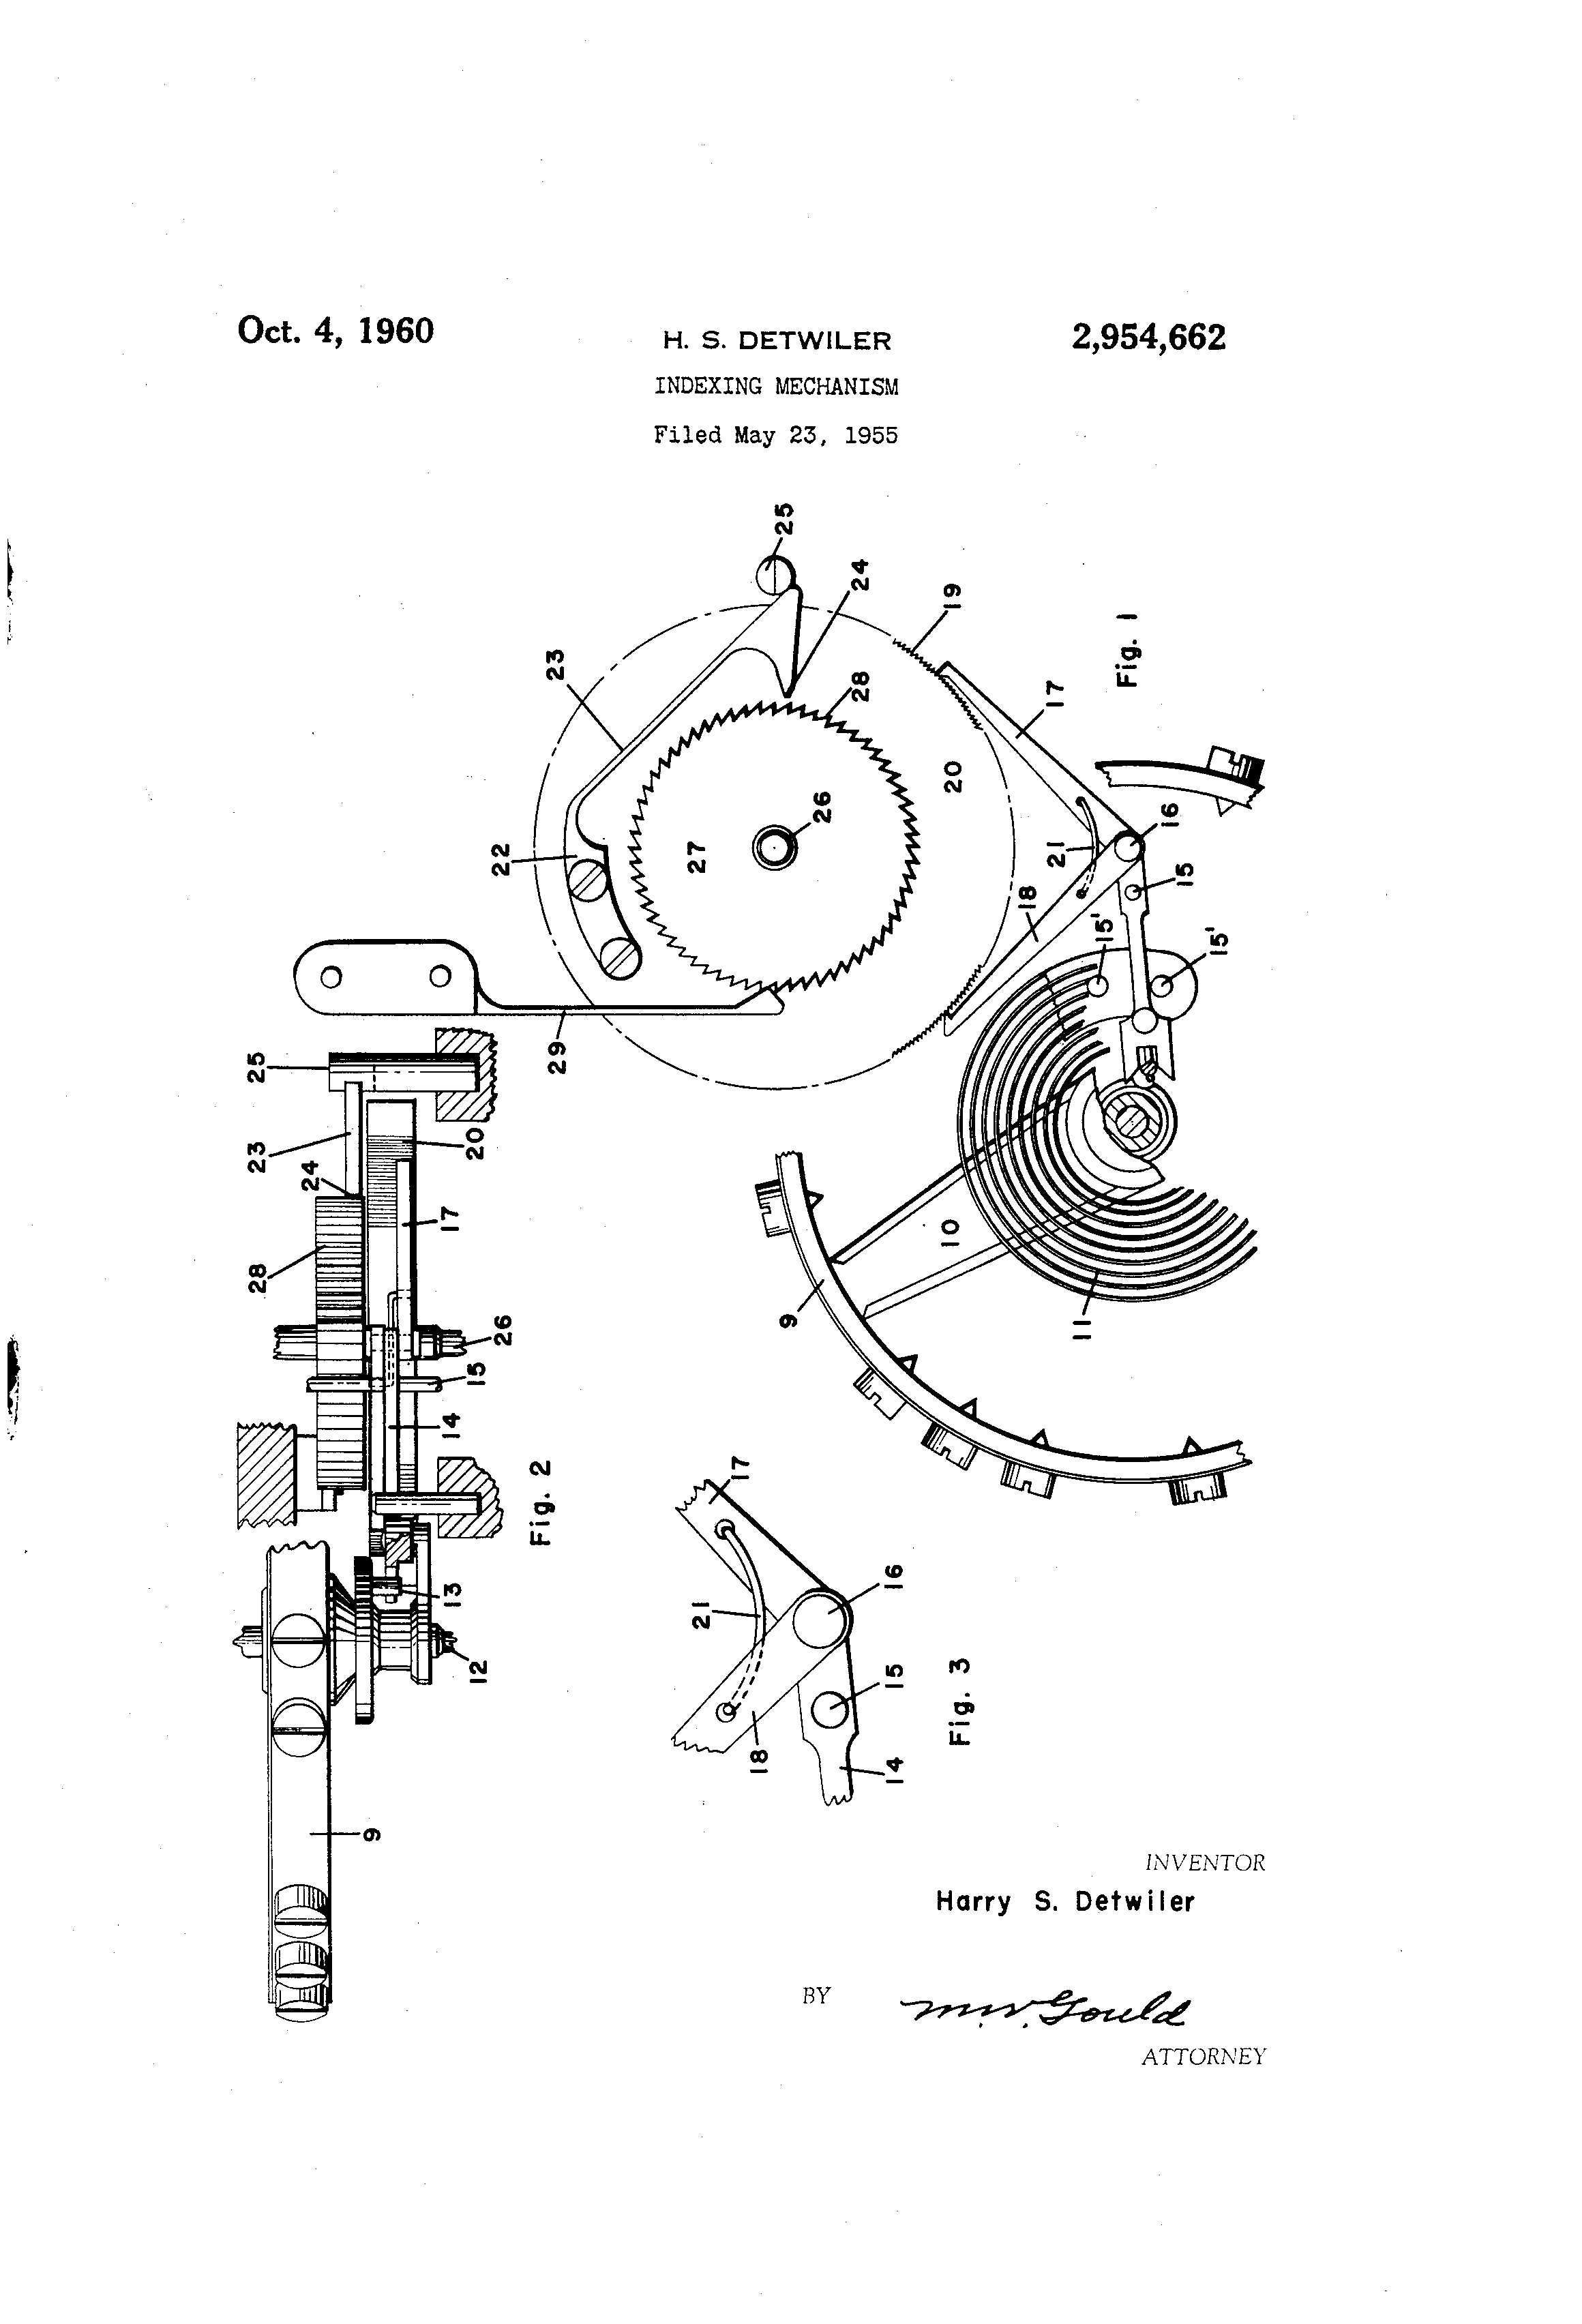 Patent Index Mech by Harry S. Detwiler Issued Oct 4, 1960